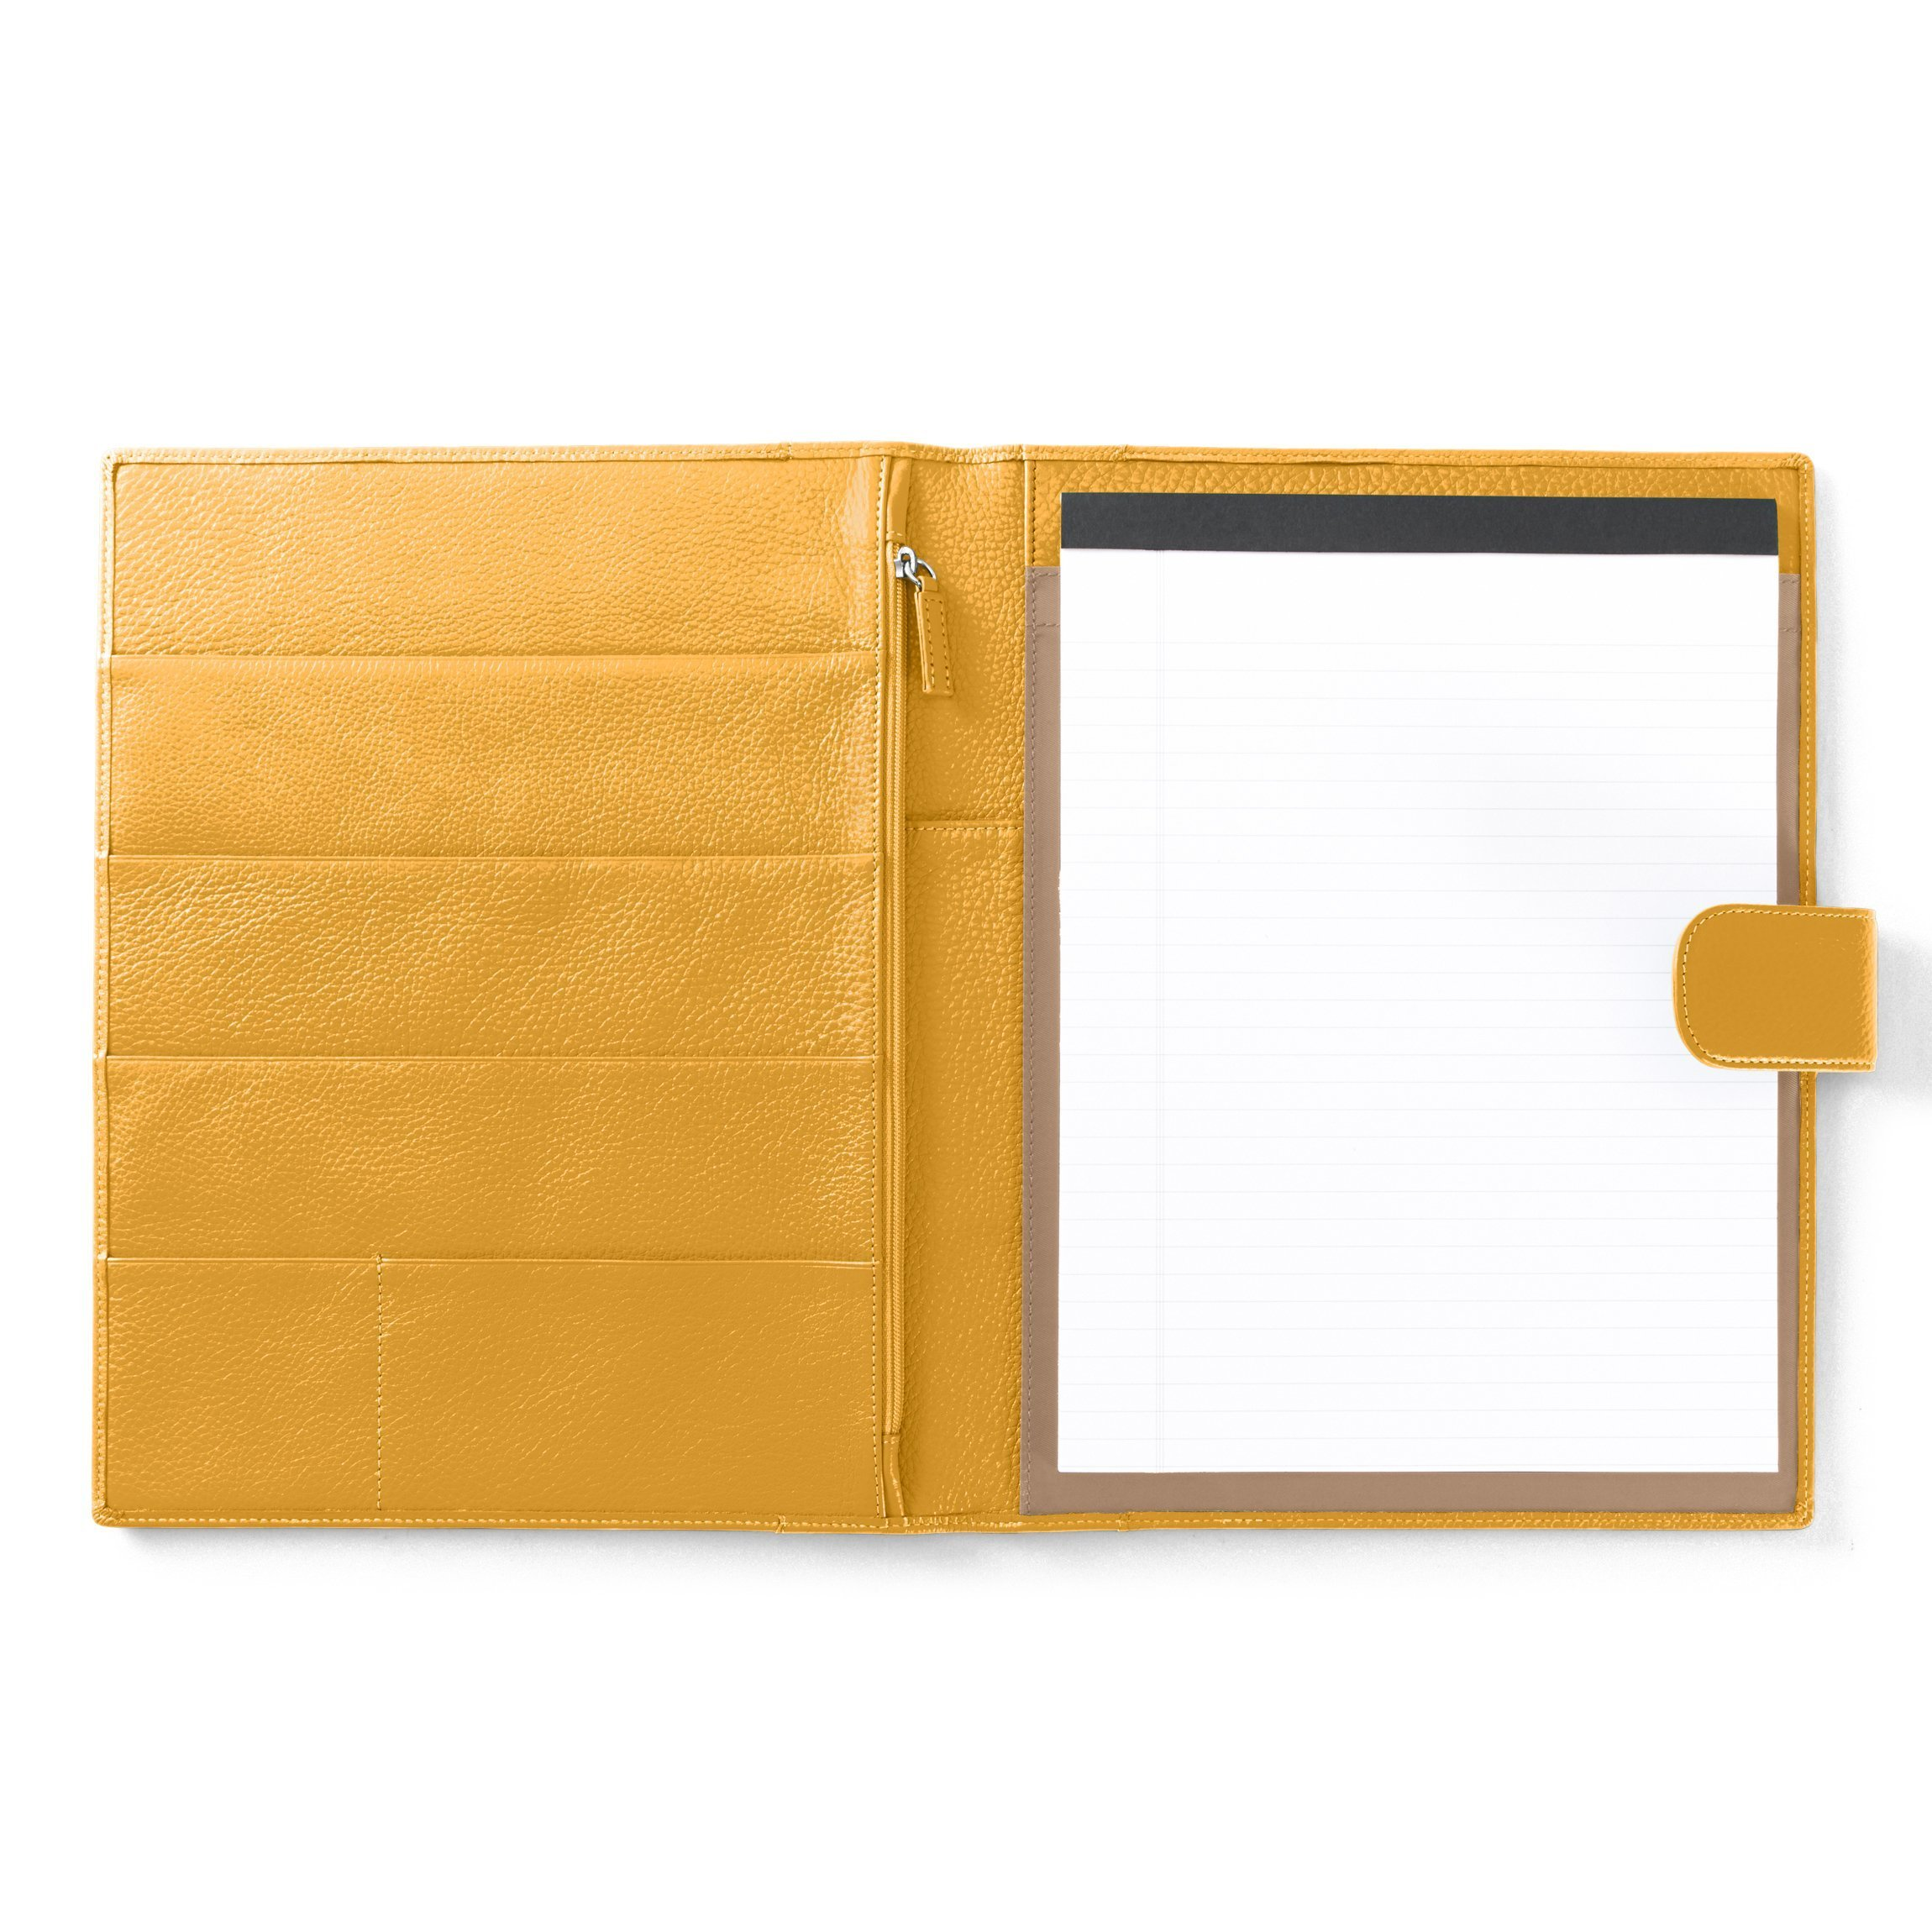 Leatherology Organizer Portfolio with Tablet Pocket & Magnetic Closure - Full Grain Leather Leather - Turmeric (yellow)